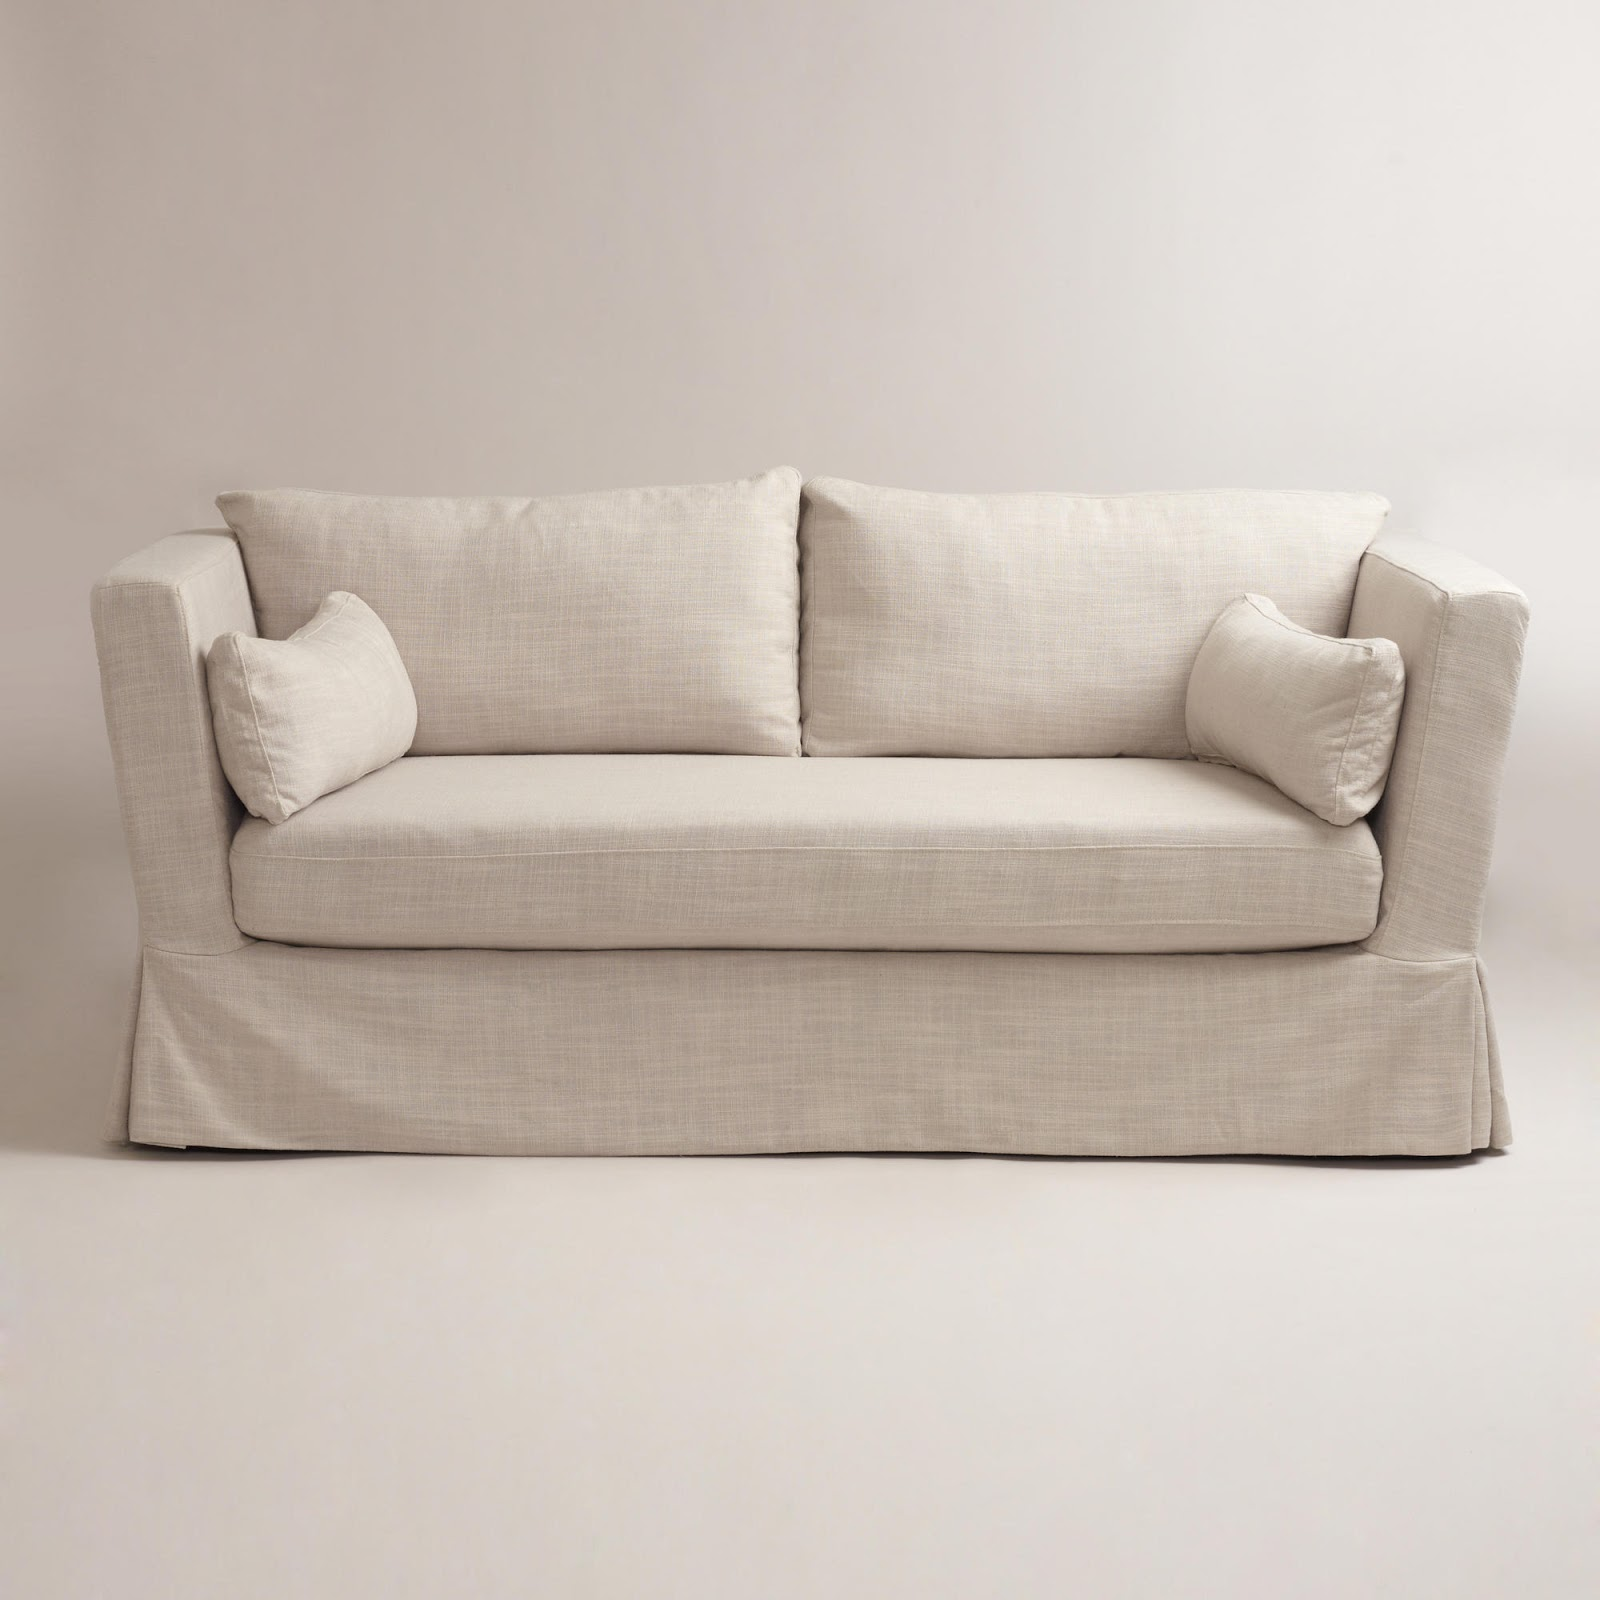 Restoration Hardware Sofa Slipcover Sofa Collections Rh ...